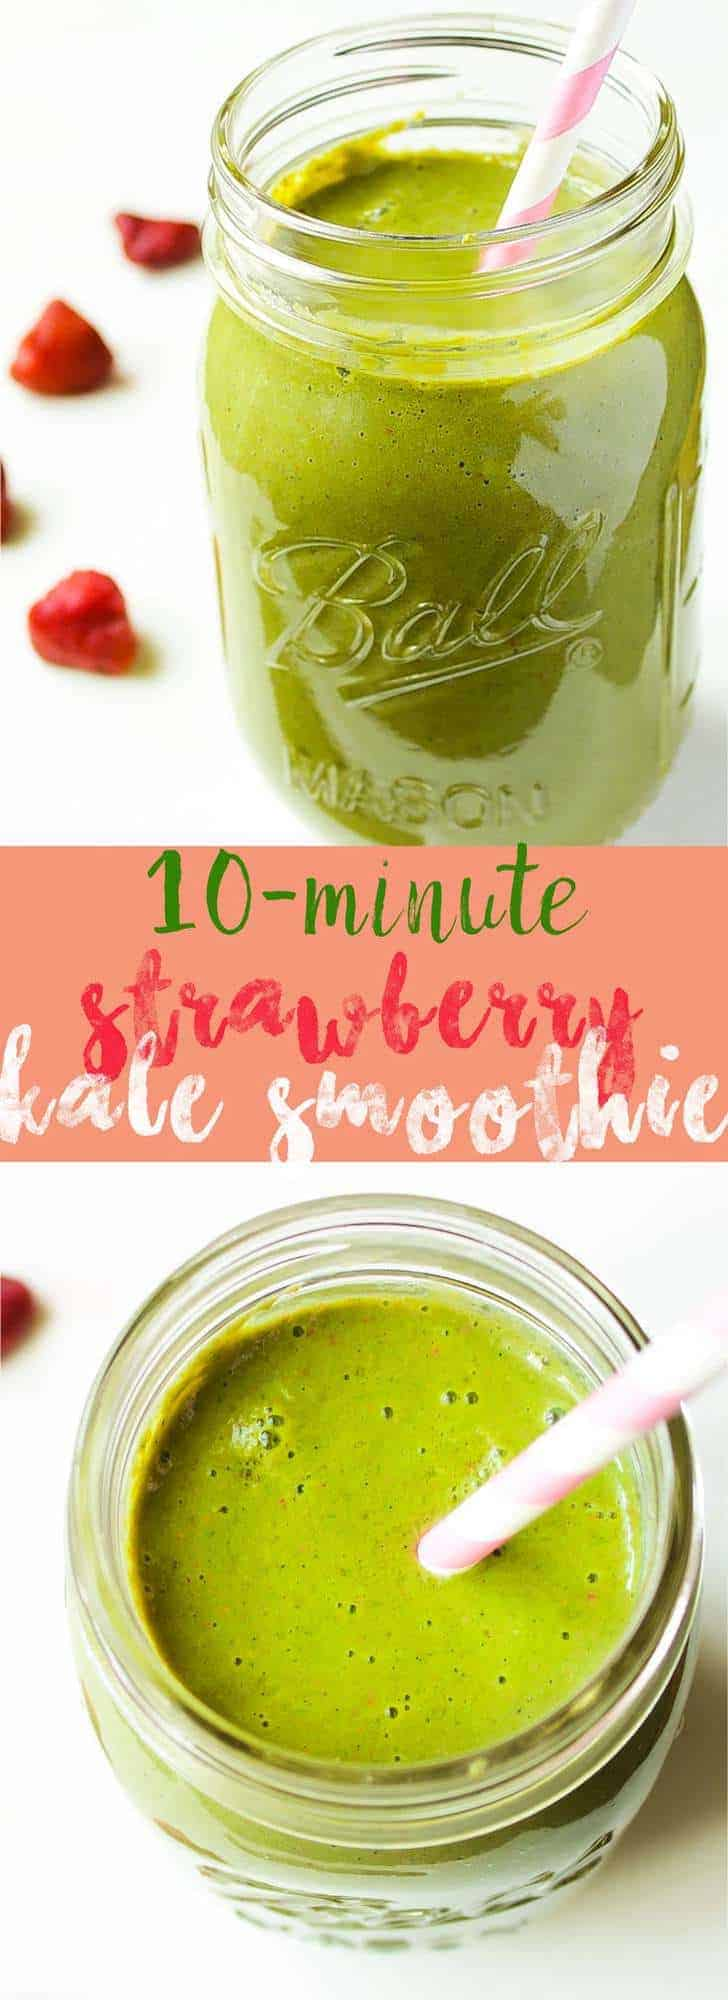 This delicious and super charged nutritious Strawberry & Kale Smoothie is made in 10 minutes and so delicious! via https://jessicainthekitchen.com